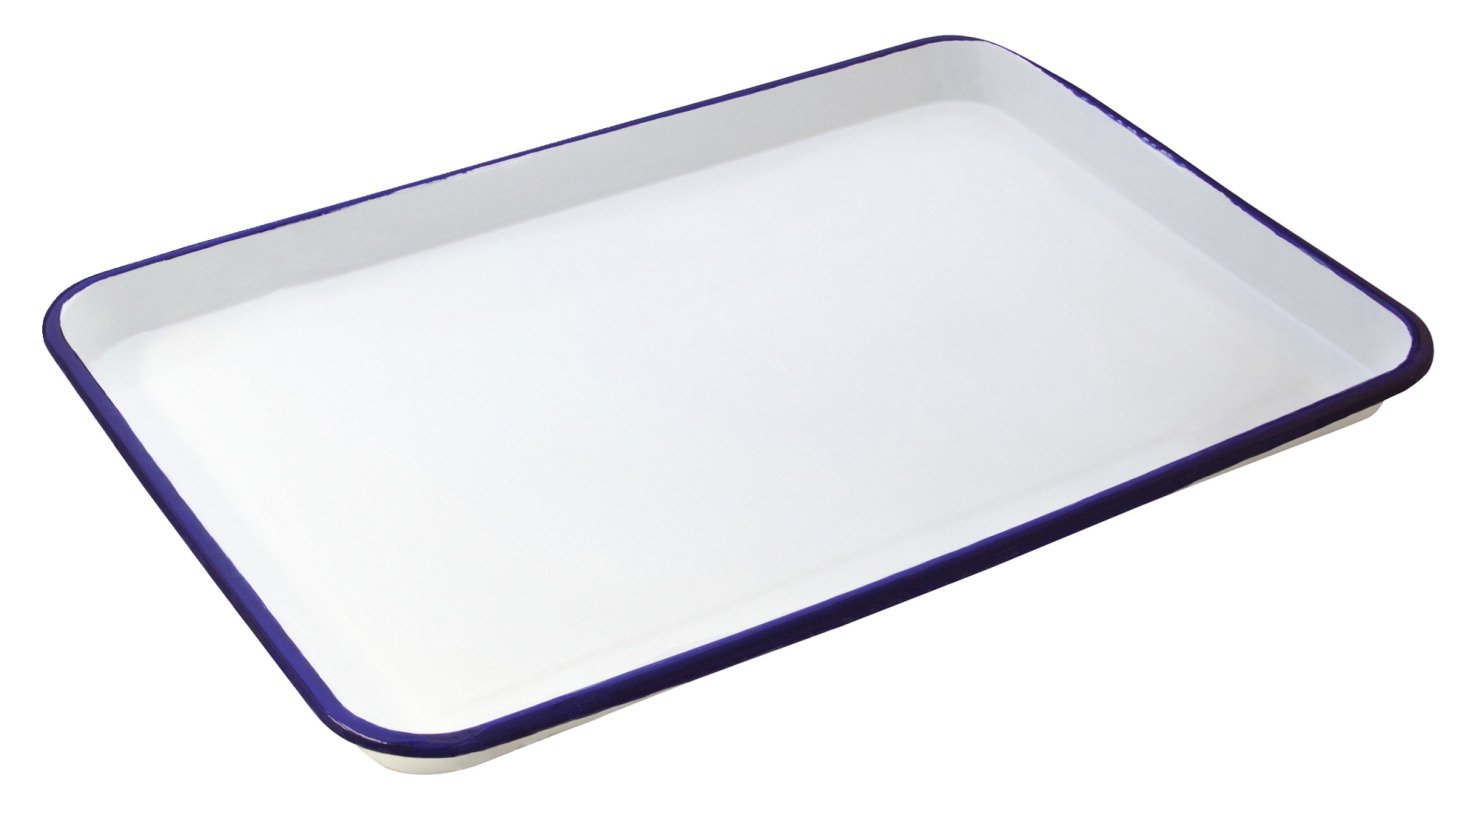 Jack Richeson 400245 Butcher Tray 17 x 24, by Jack Richeson